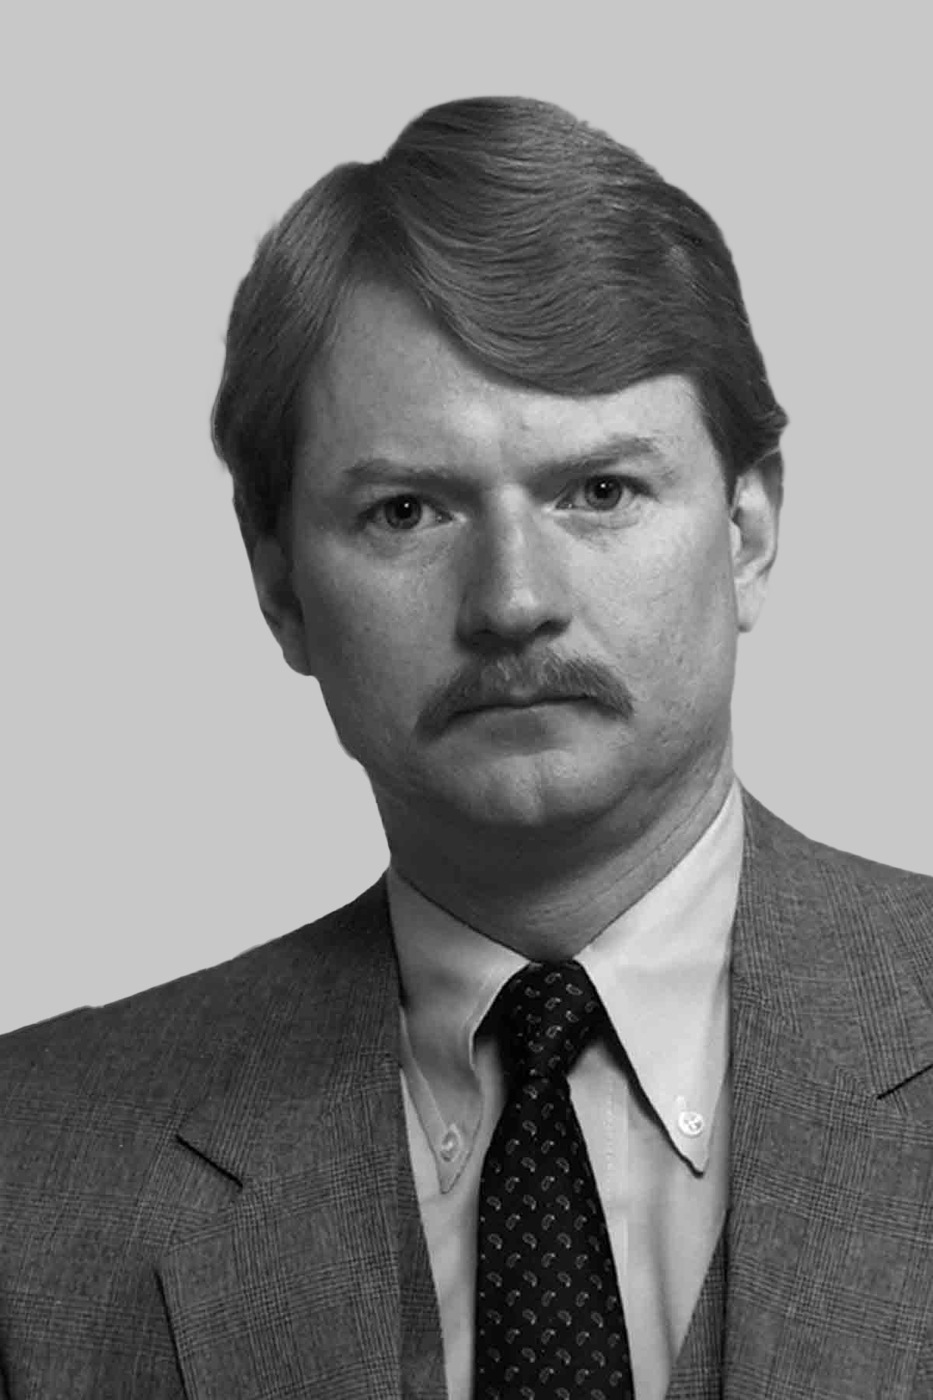 The FBI Wall of Honor remembers Supervisory Special Agent Mark Johnston, who died on September 12, 2017 from an illness incurred as a result of his response to the 9/11 attacks in New York.